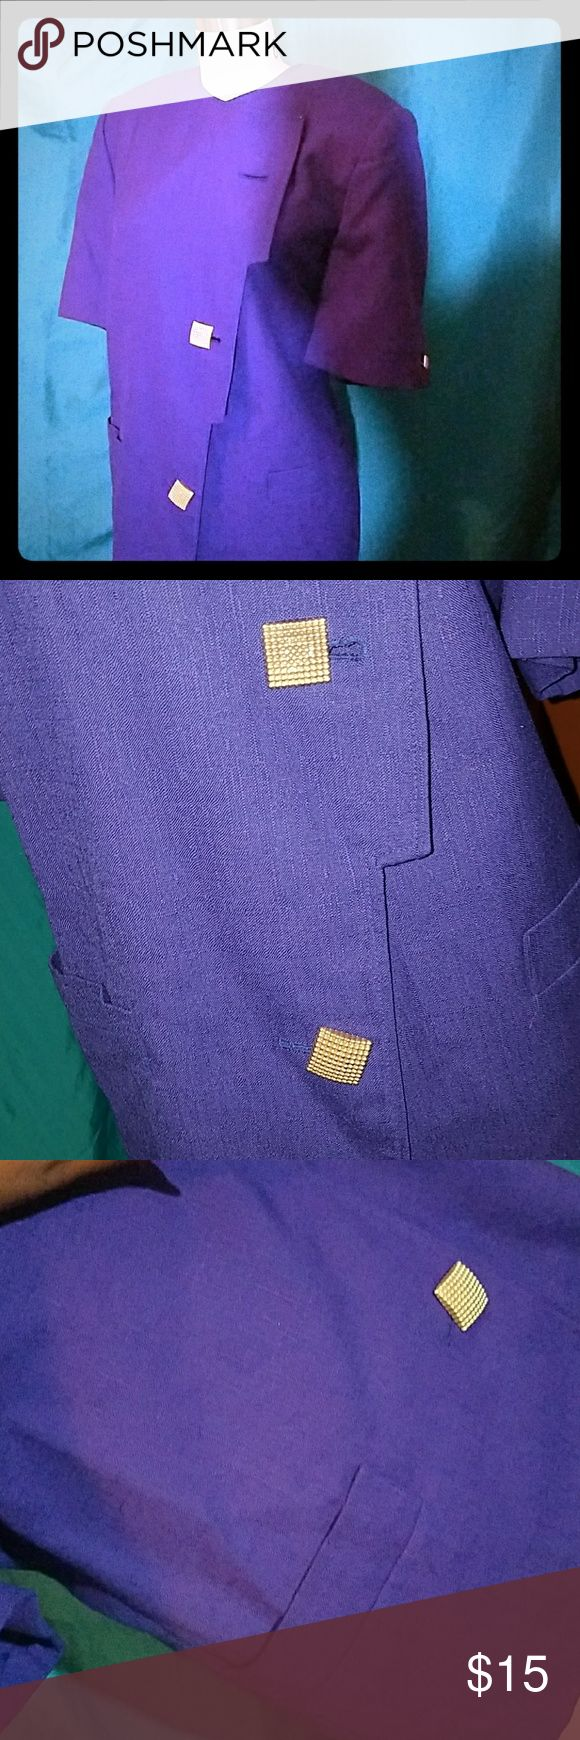 Royal Purple Blazer Short Sleeve Blazer. 3 Buttons From Chest to Belly [1 missing]  Perfect DIY Fix! Make it Really Yours by Adding a Button Of Your Choice Buttons are Gold Blazer is @ Hip Length Front Pockets are Real but Very Small Blazer Shell 50/50% Polyester Rayon Lining 100% Polyester Emily... Jackets & Coats Blazers